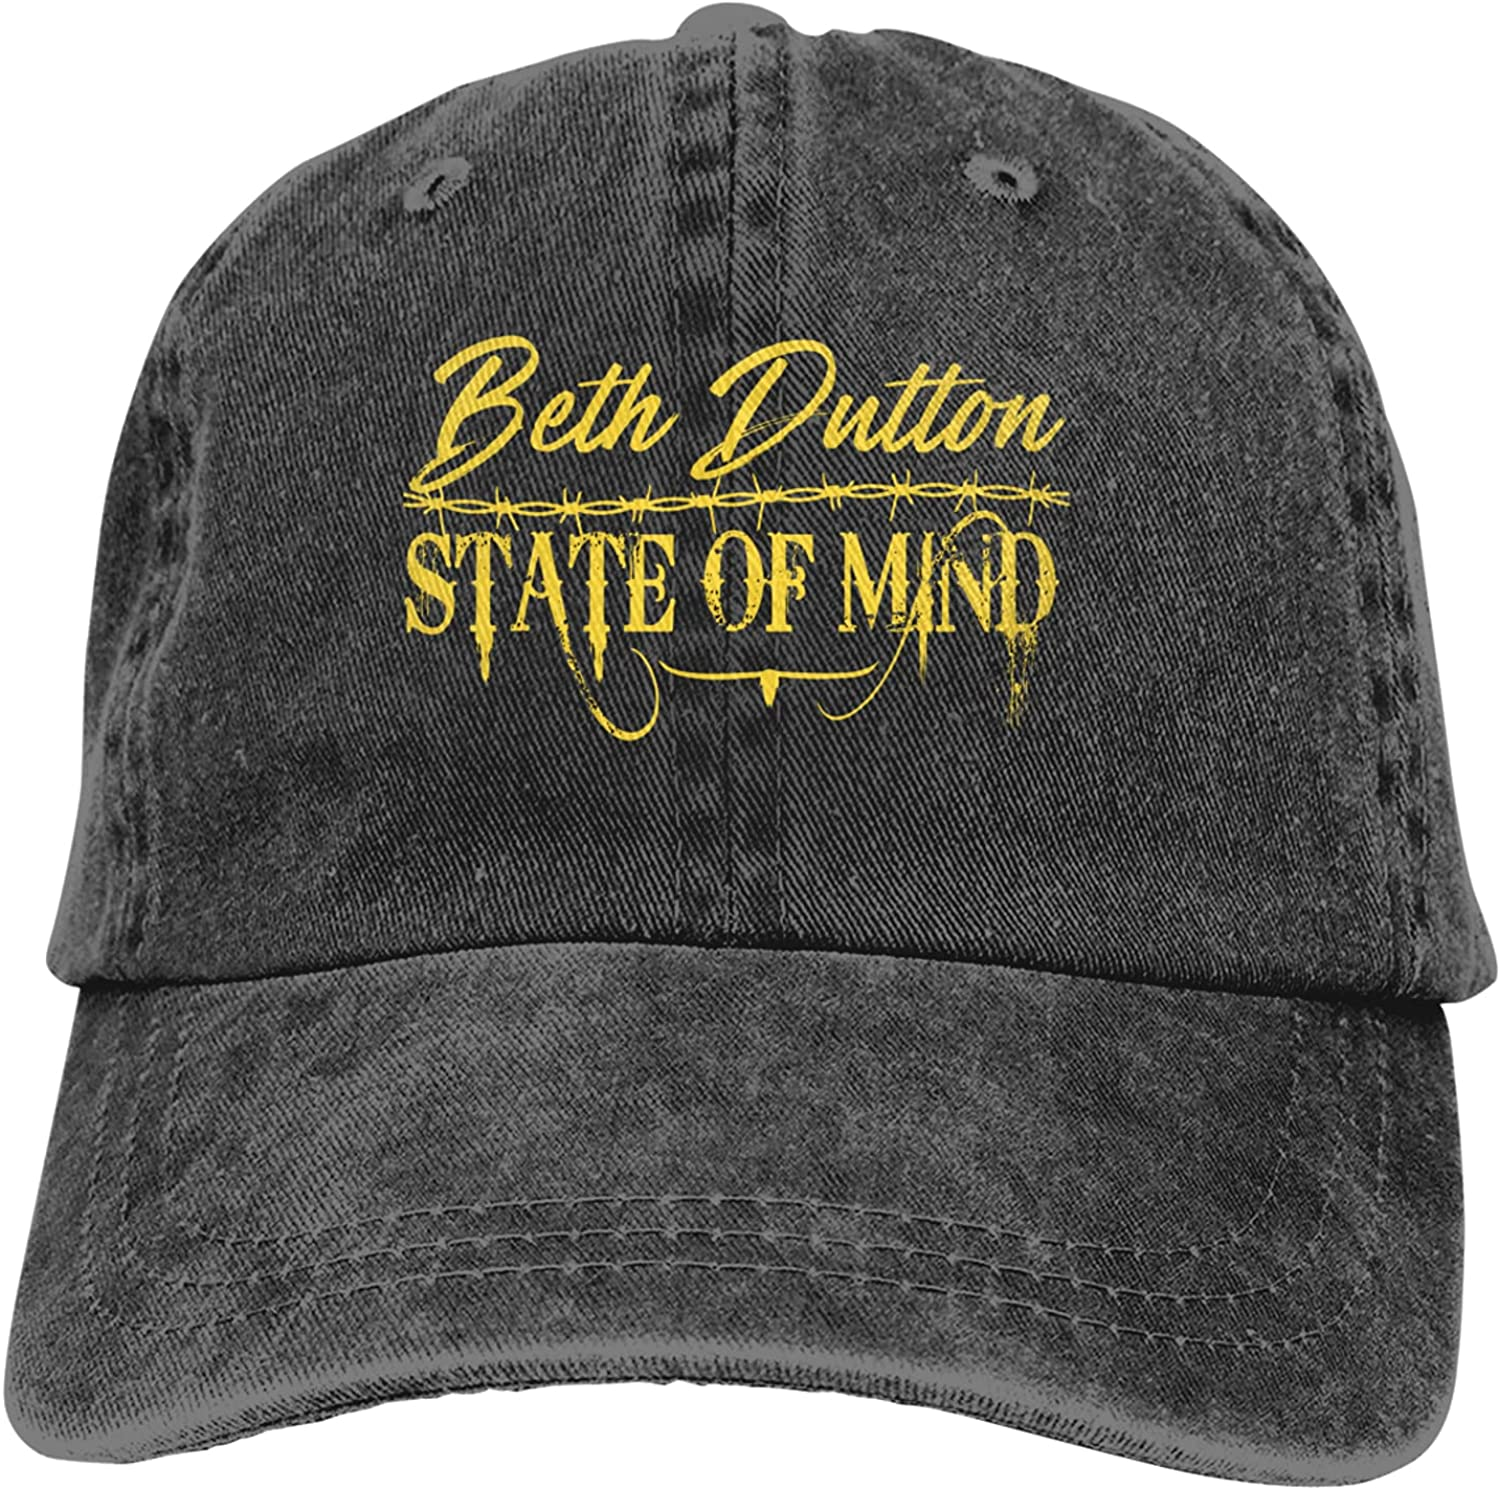 Beth Dutton State of Mind Sports Washable Cap Trucker Columbus Mall H Max 80% OFF Baseball